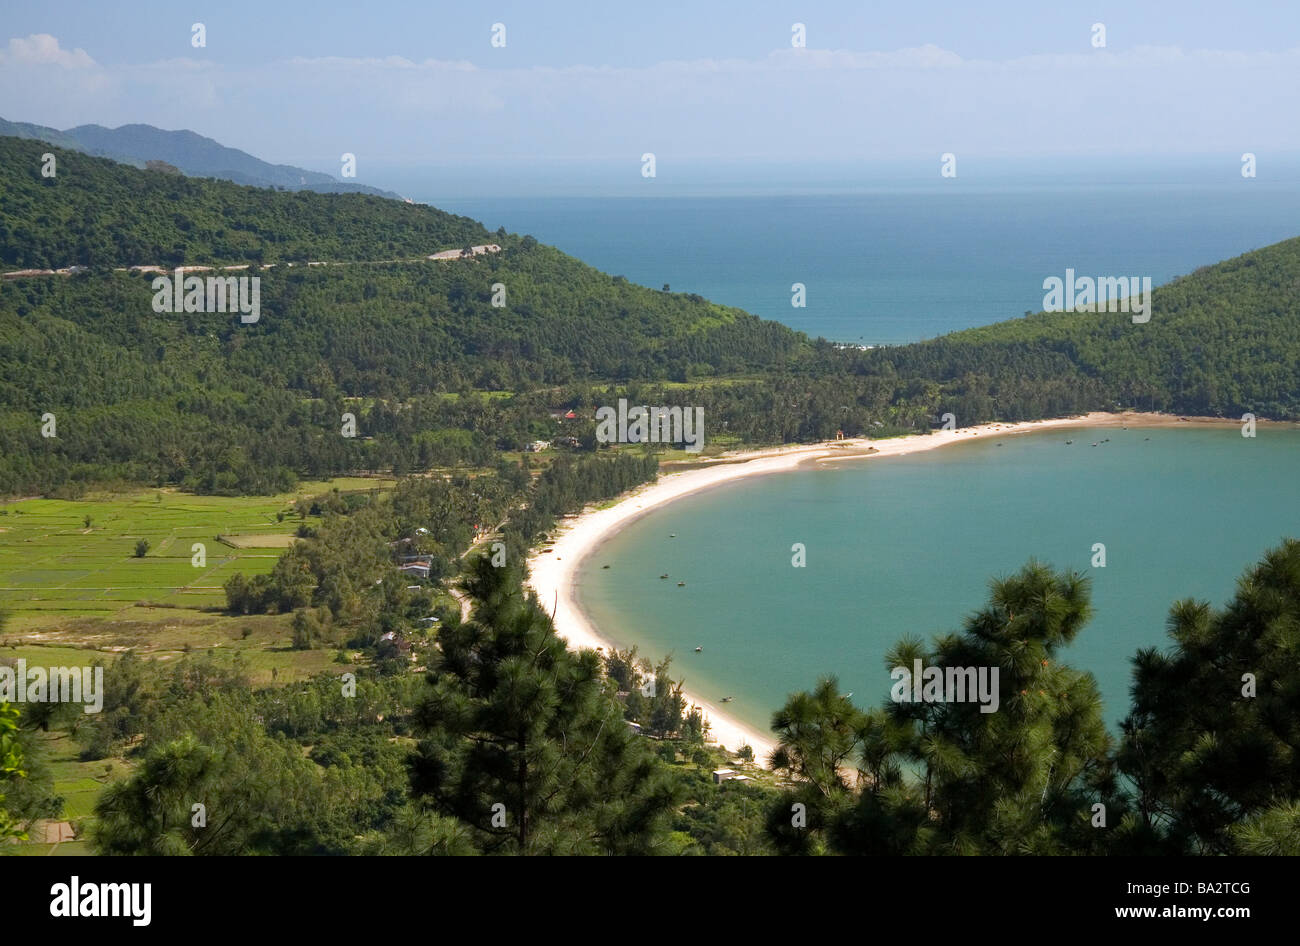 Leper colony village north of Da Nang along the South China Sea Vietnam - Stock Image